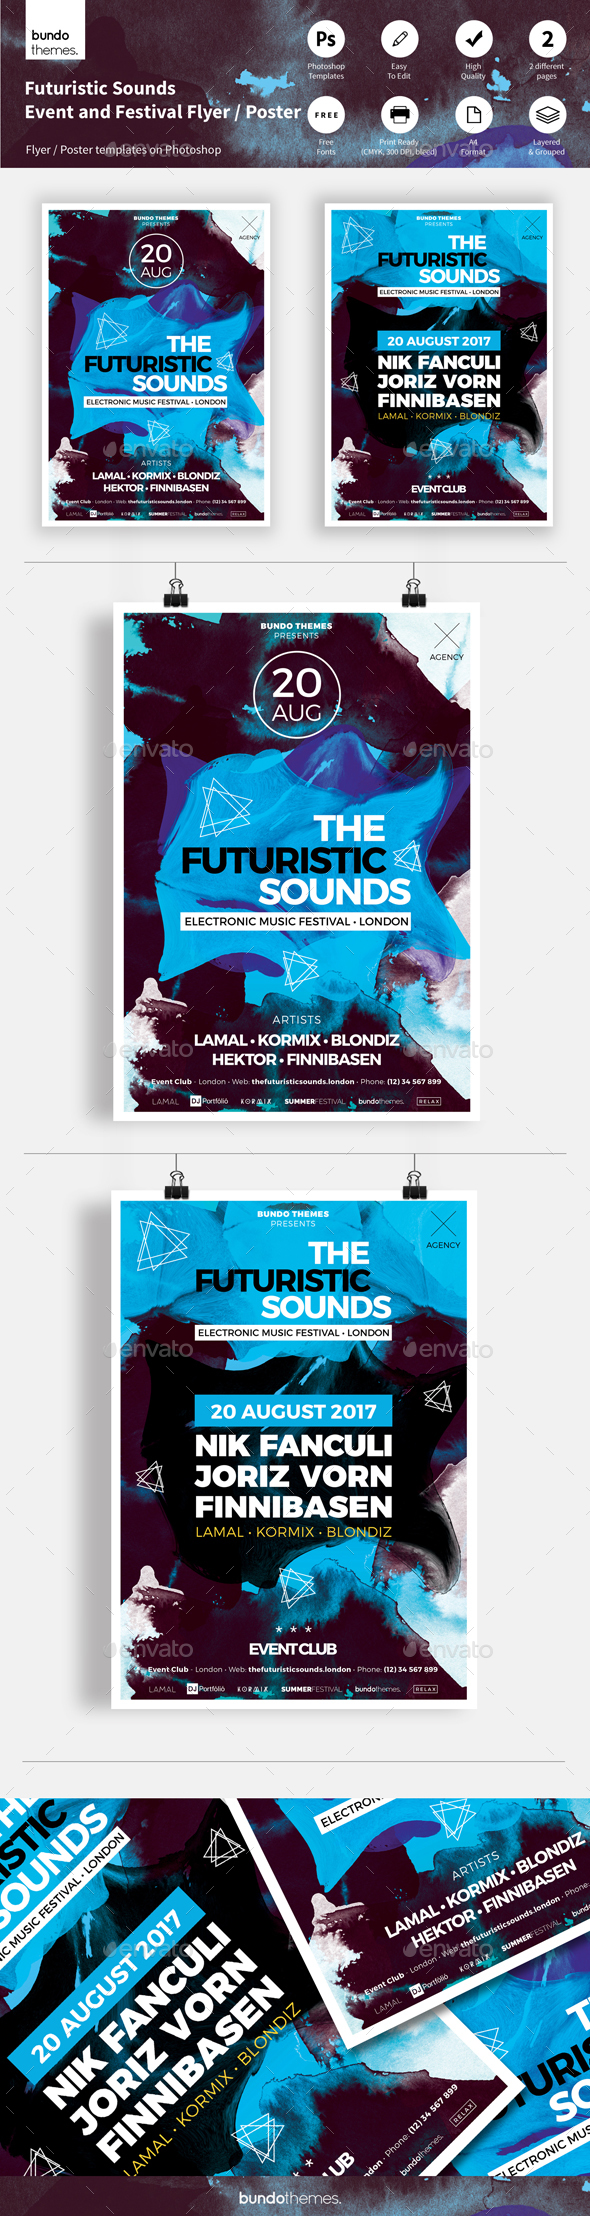 Futuristic Sounds Festival and Event Flyer / Poster - Events Flyers